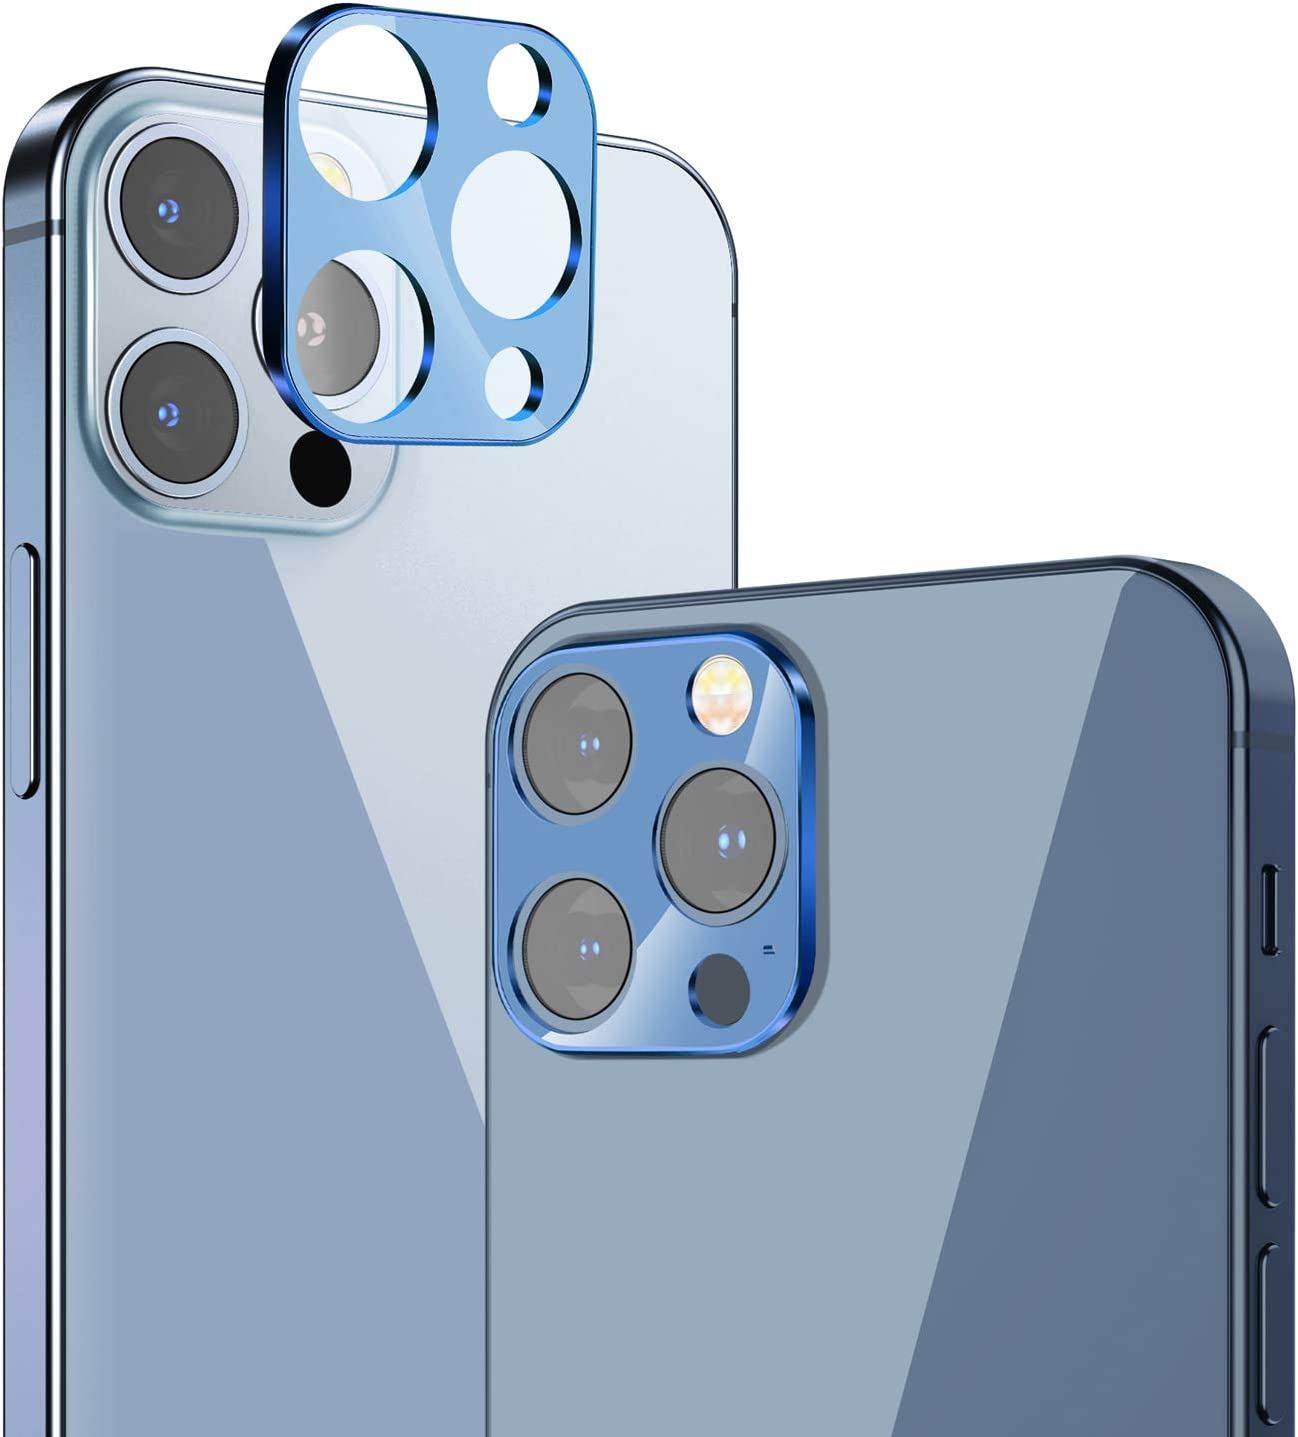 Cupecoo Camera Lens Screen Protector Compatible with iPhone 12 Pro Max 6.7 inch, Aluminum Alloy Lens Protective Ring Metal Tempered Glass Cover Film - HD/Dust-Proof/Anti-Scratch (Pacific Blue)